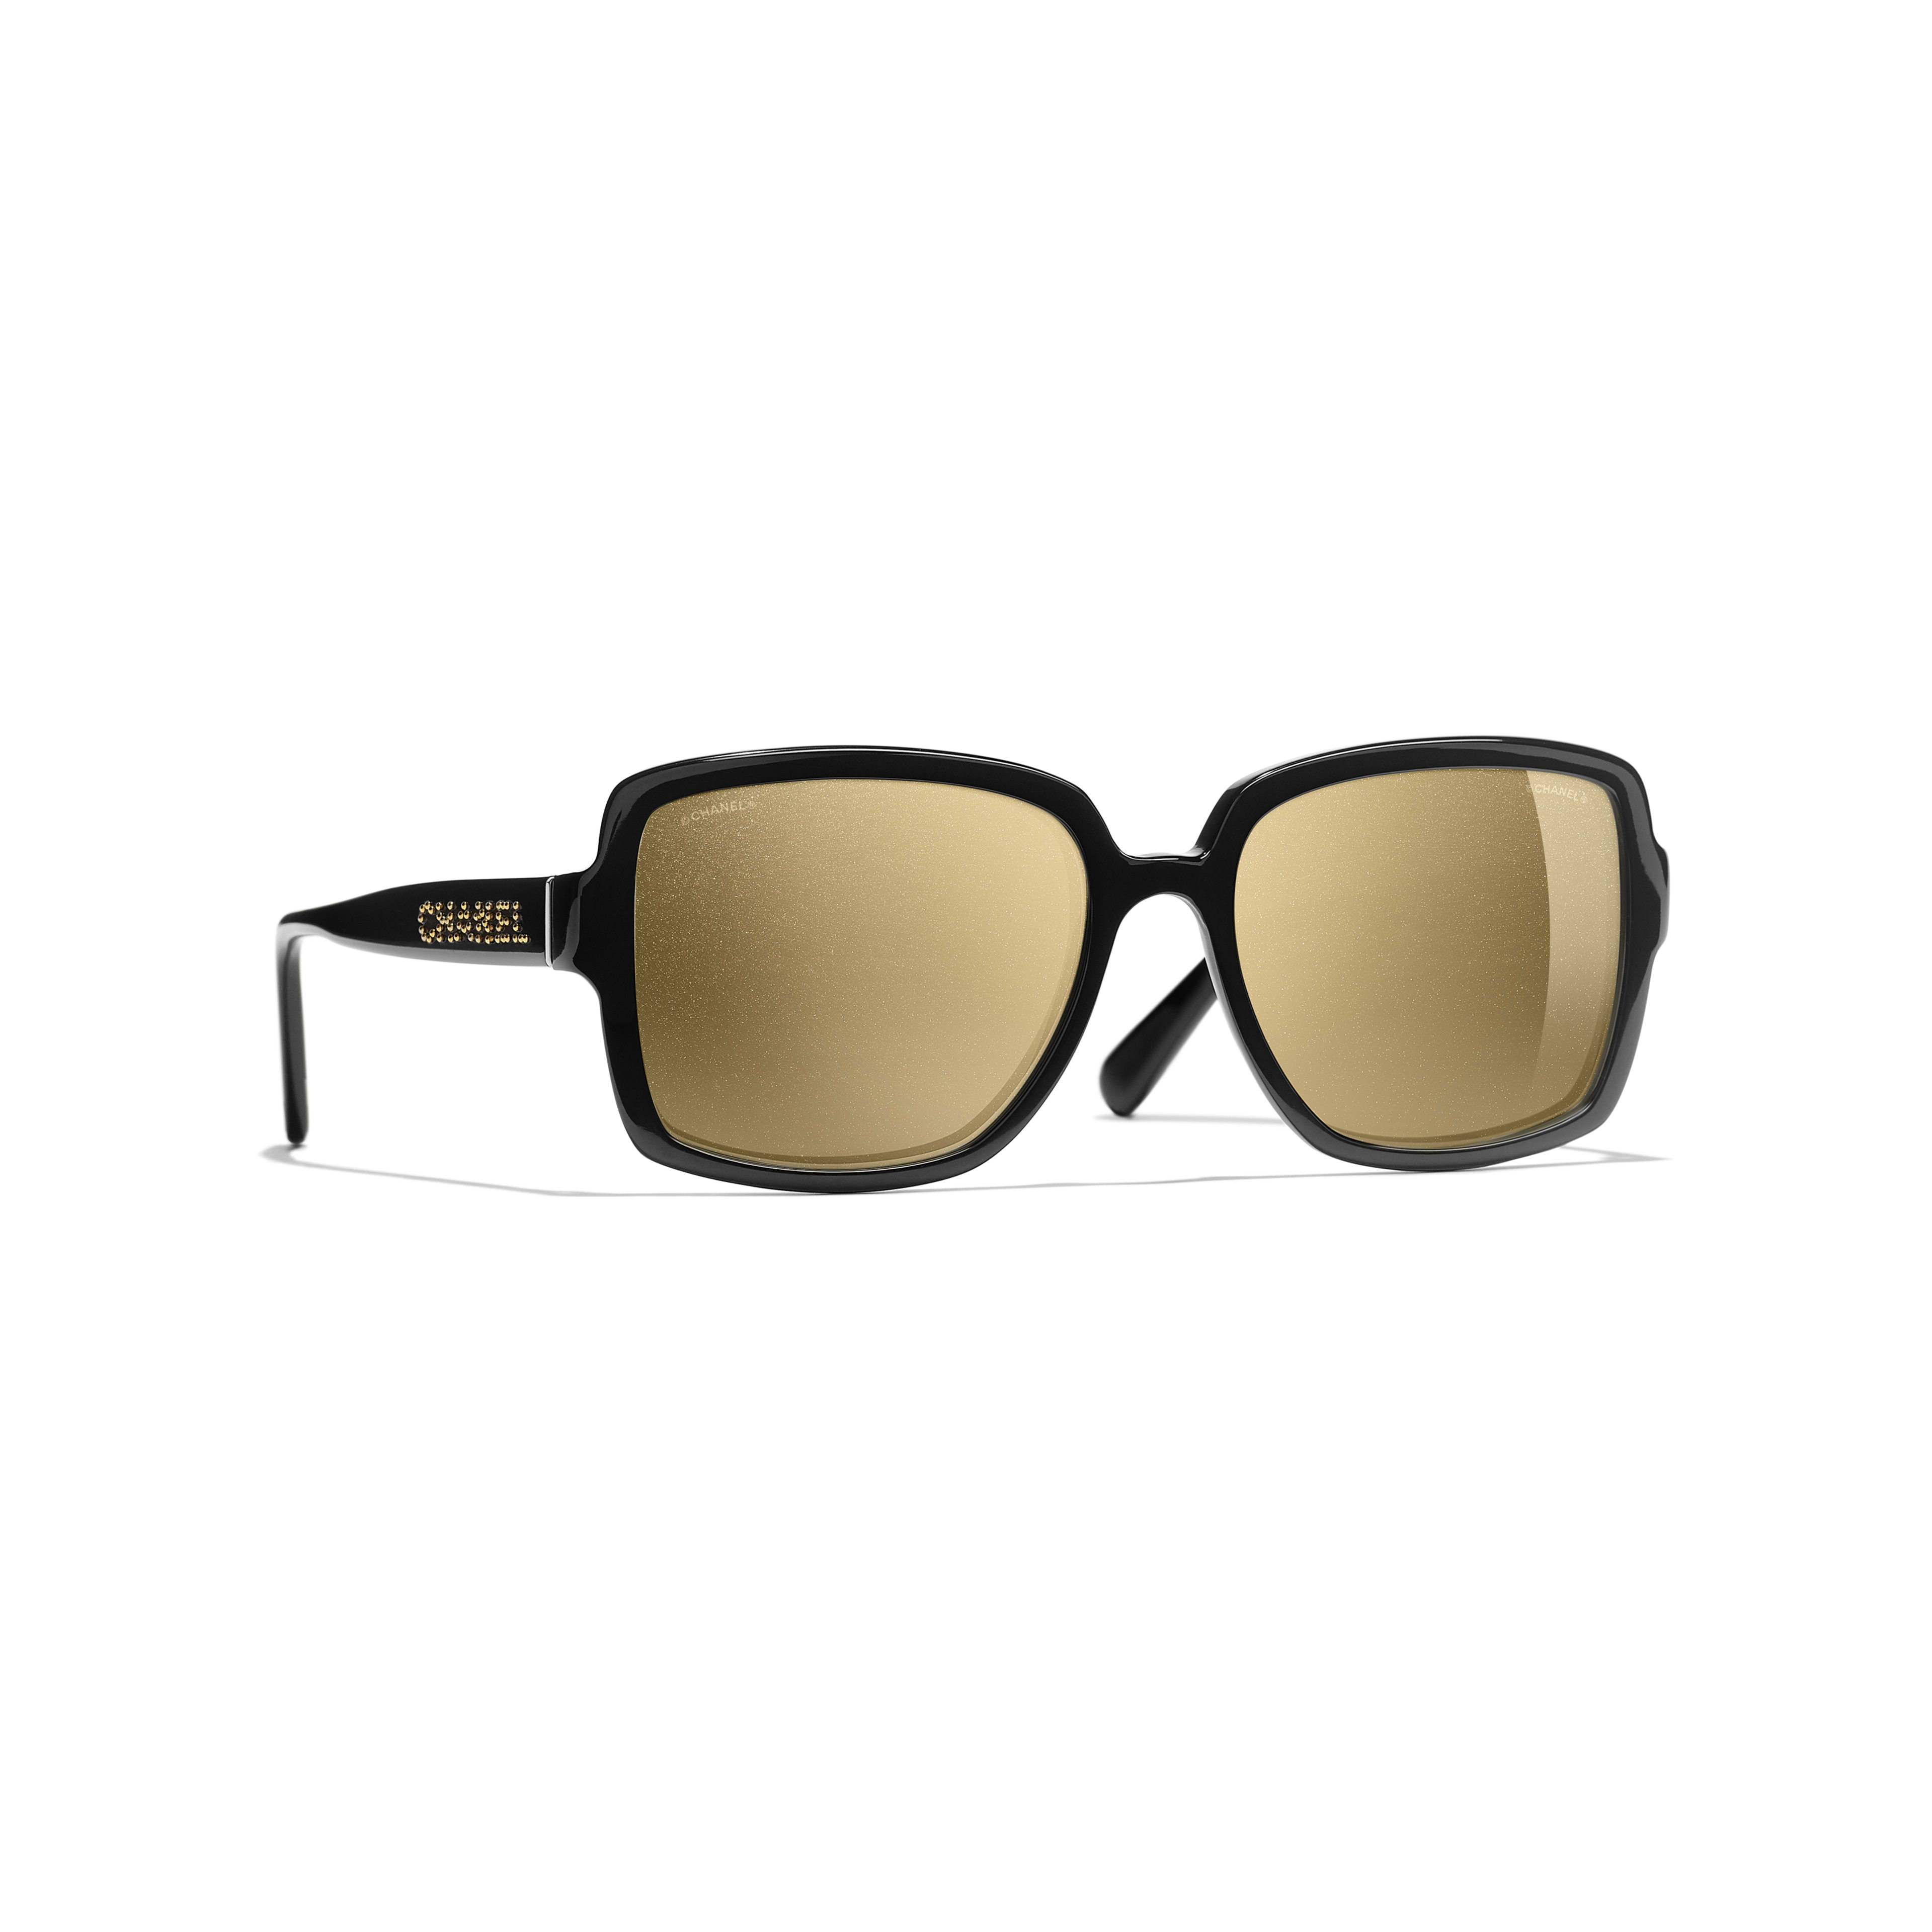 Square Sunglasses - Black - Acetate - Default view - see full sized version